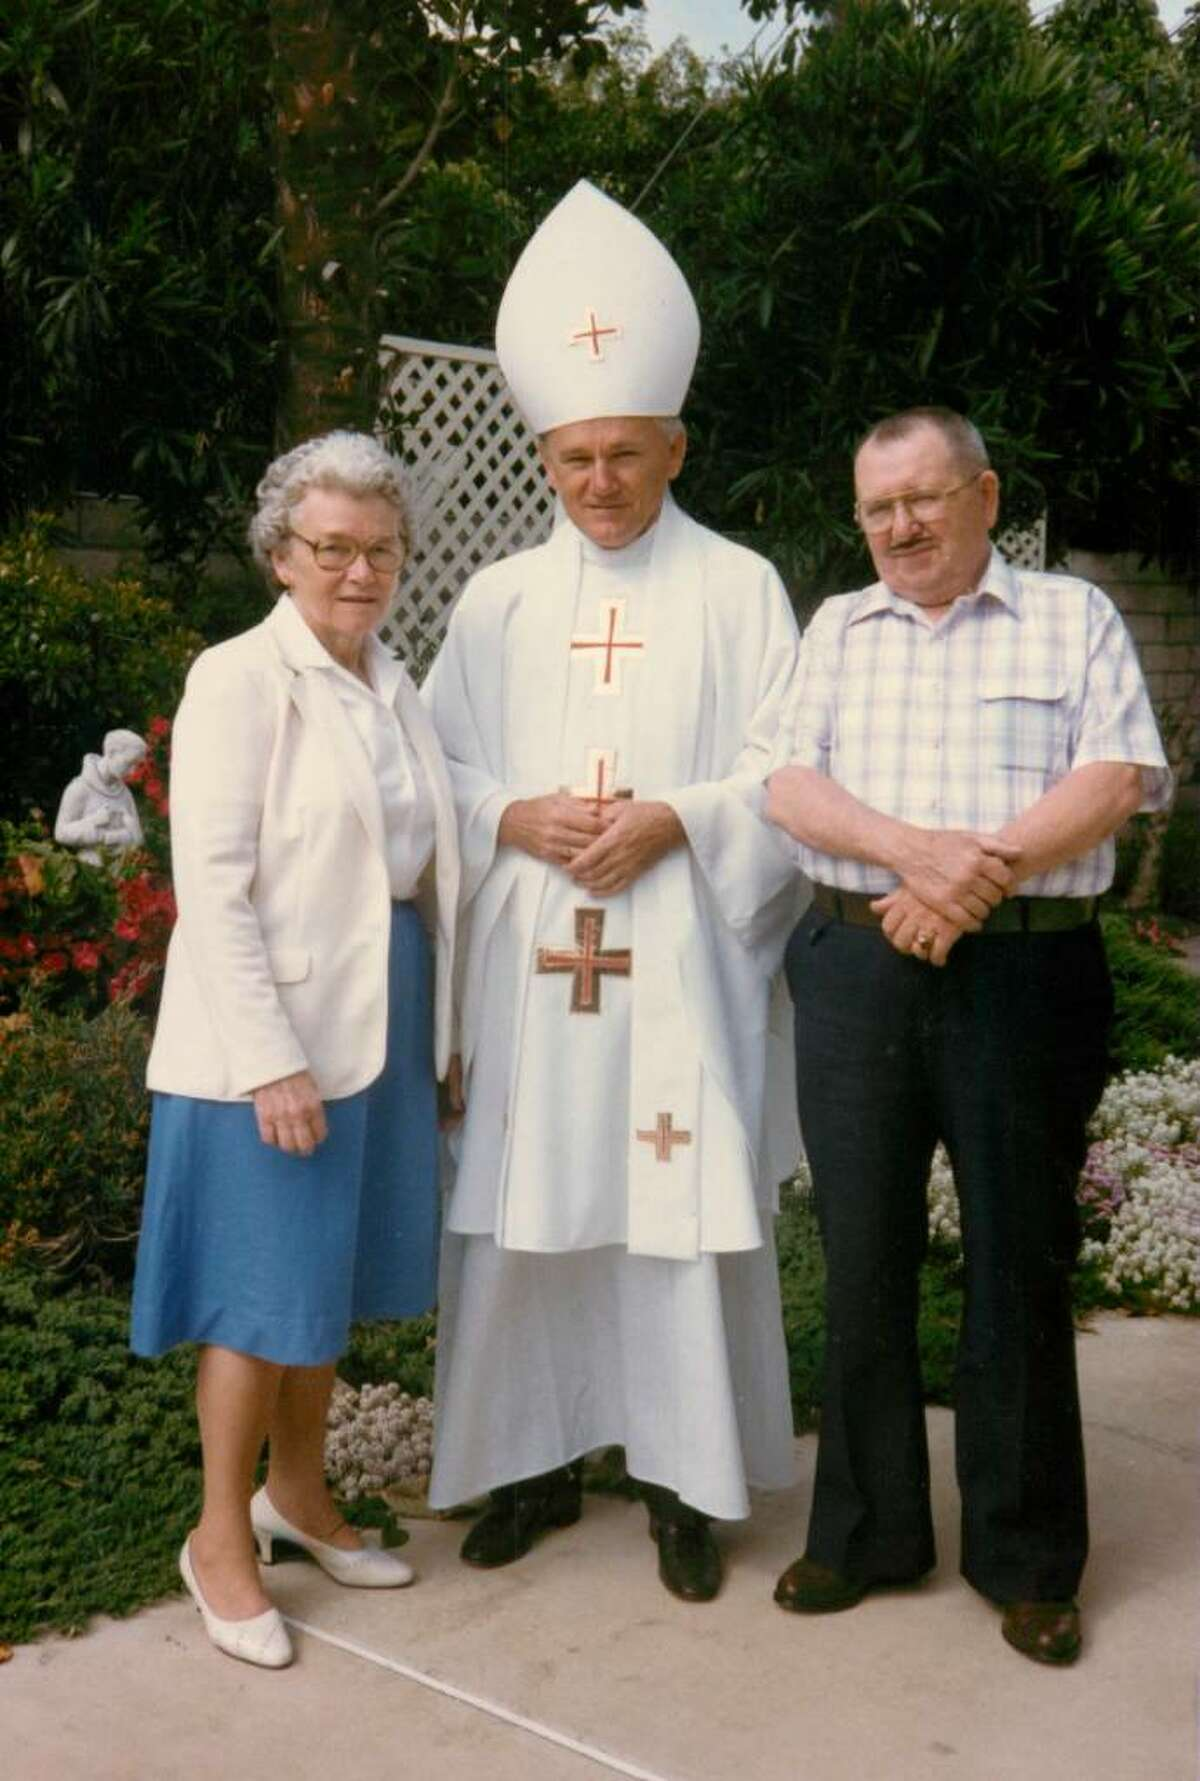 Eugene Greytak, a Trumbull native who recently died, was impersonator of Pope John Paul II. This photo was photo with his sister Jean Andrejko and her husband Mac Andrejko on a visit to California. Jean is now 94 years old and still lives in Stratford.